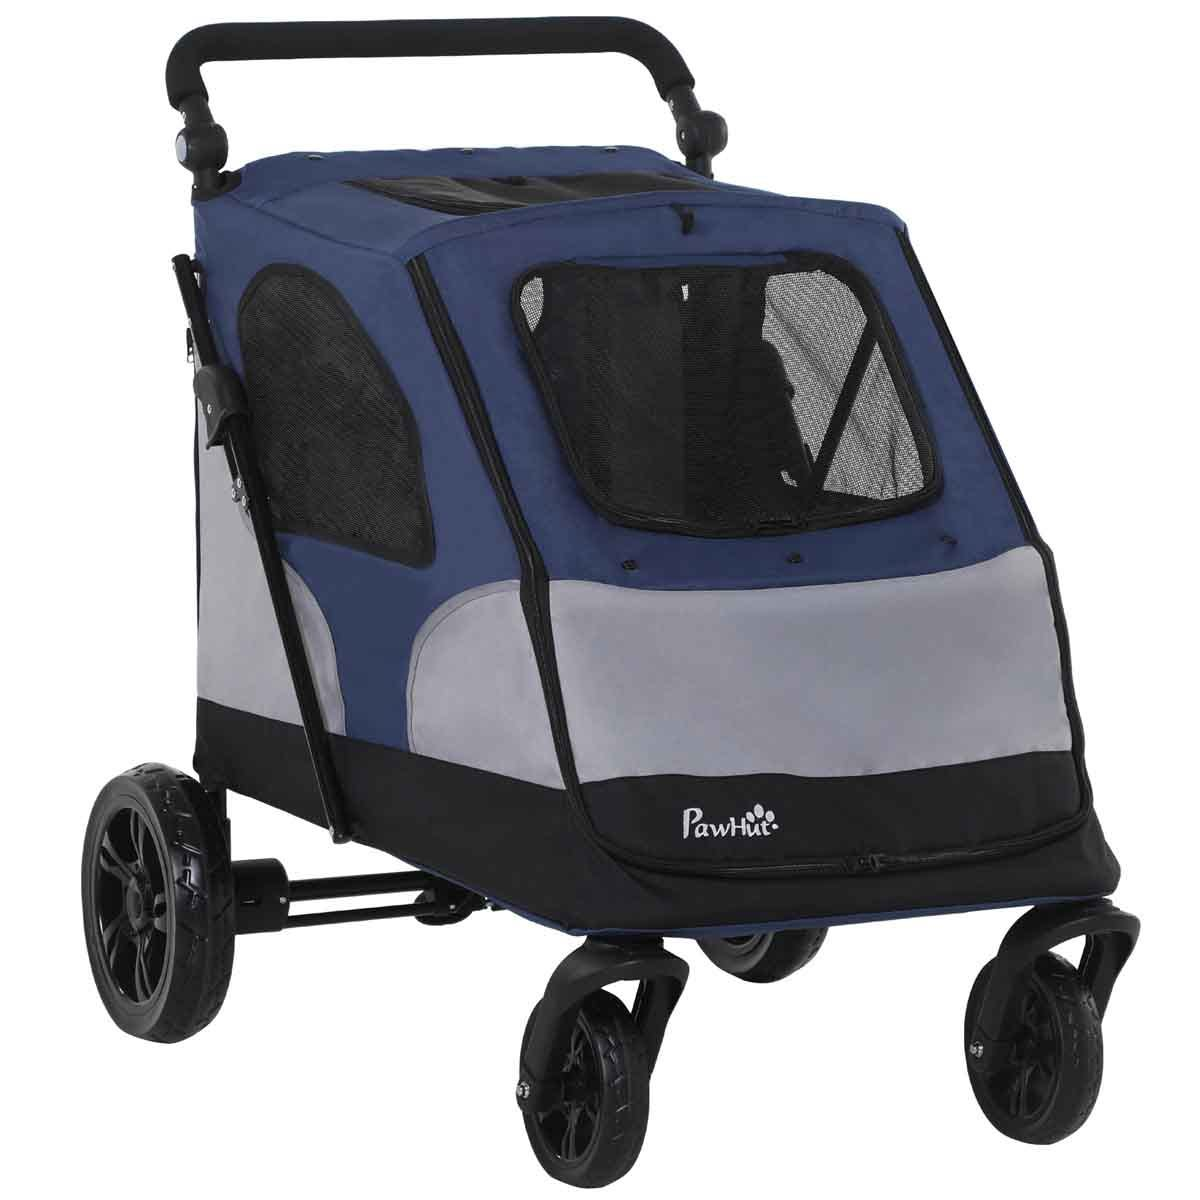 PawHut Pet Stroller Dog Foldable Travel Carriage with Adjustable Handle - Blue